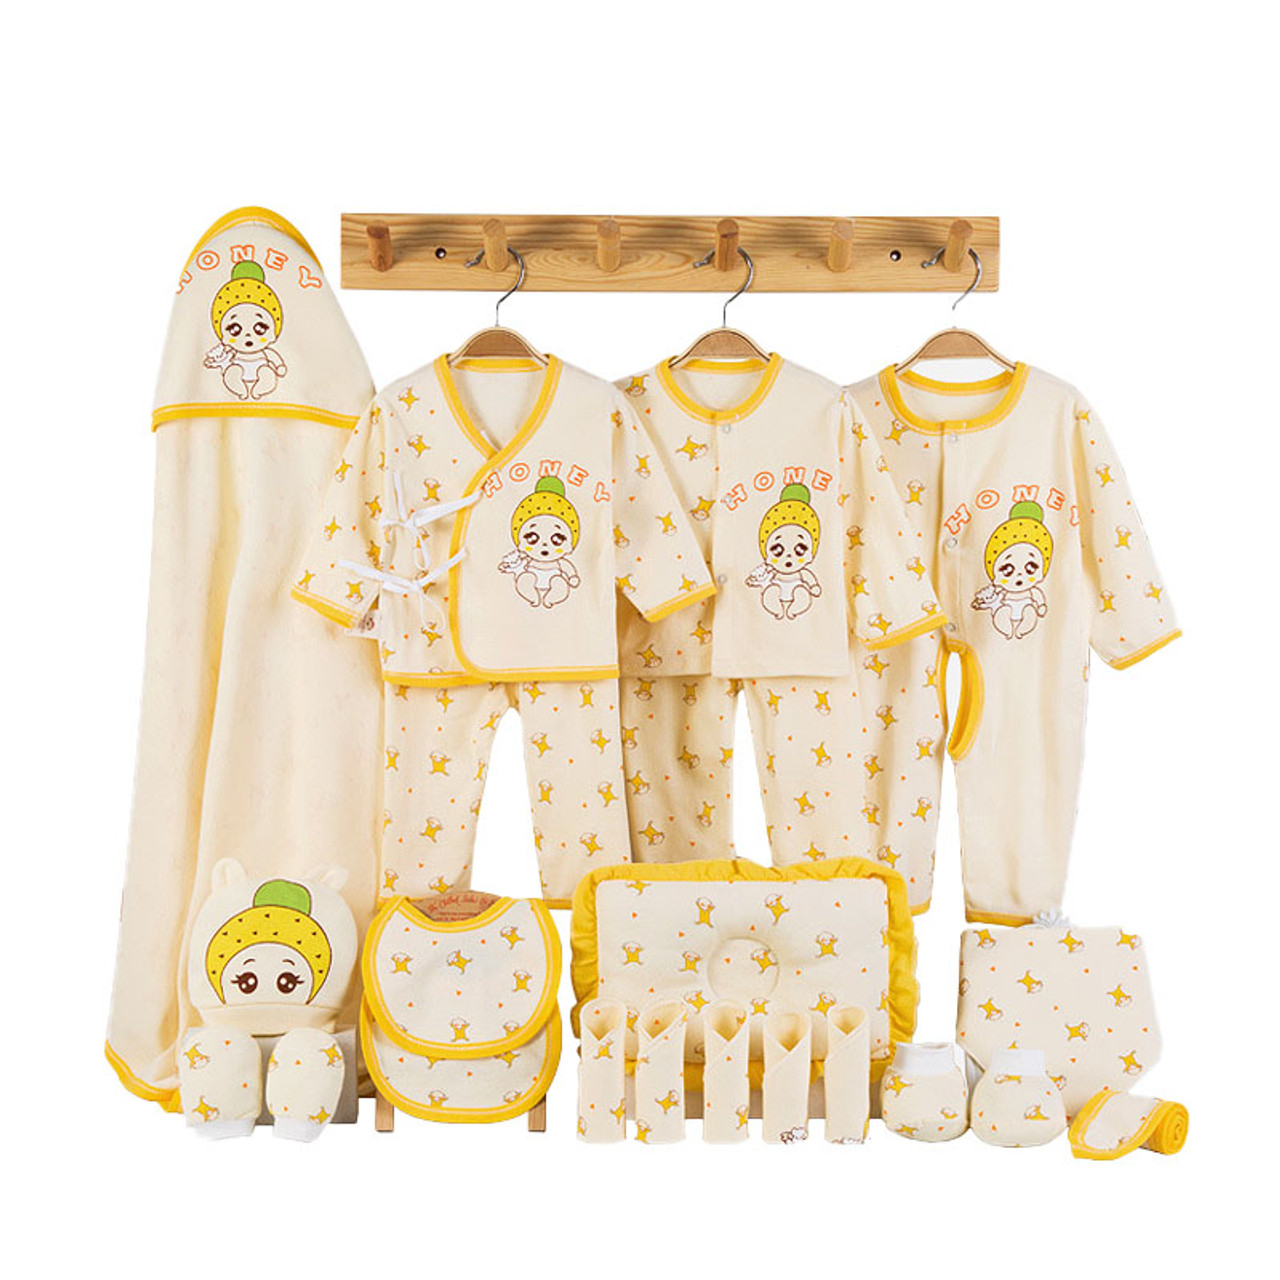 Newborn Baby Clothes Soft Cotton Toddler Baby Boy Girl Clothes Set Cartoon  Infant Clothing New Born Gift Set 8 Colors